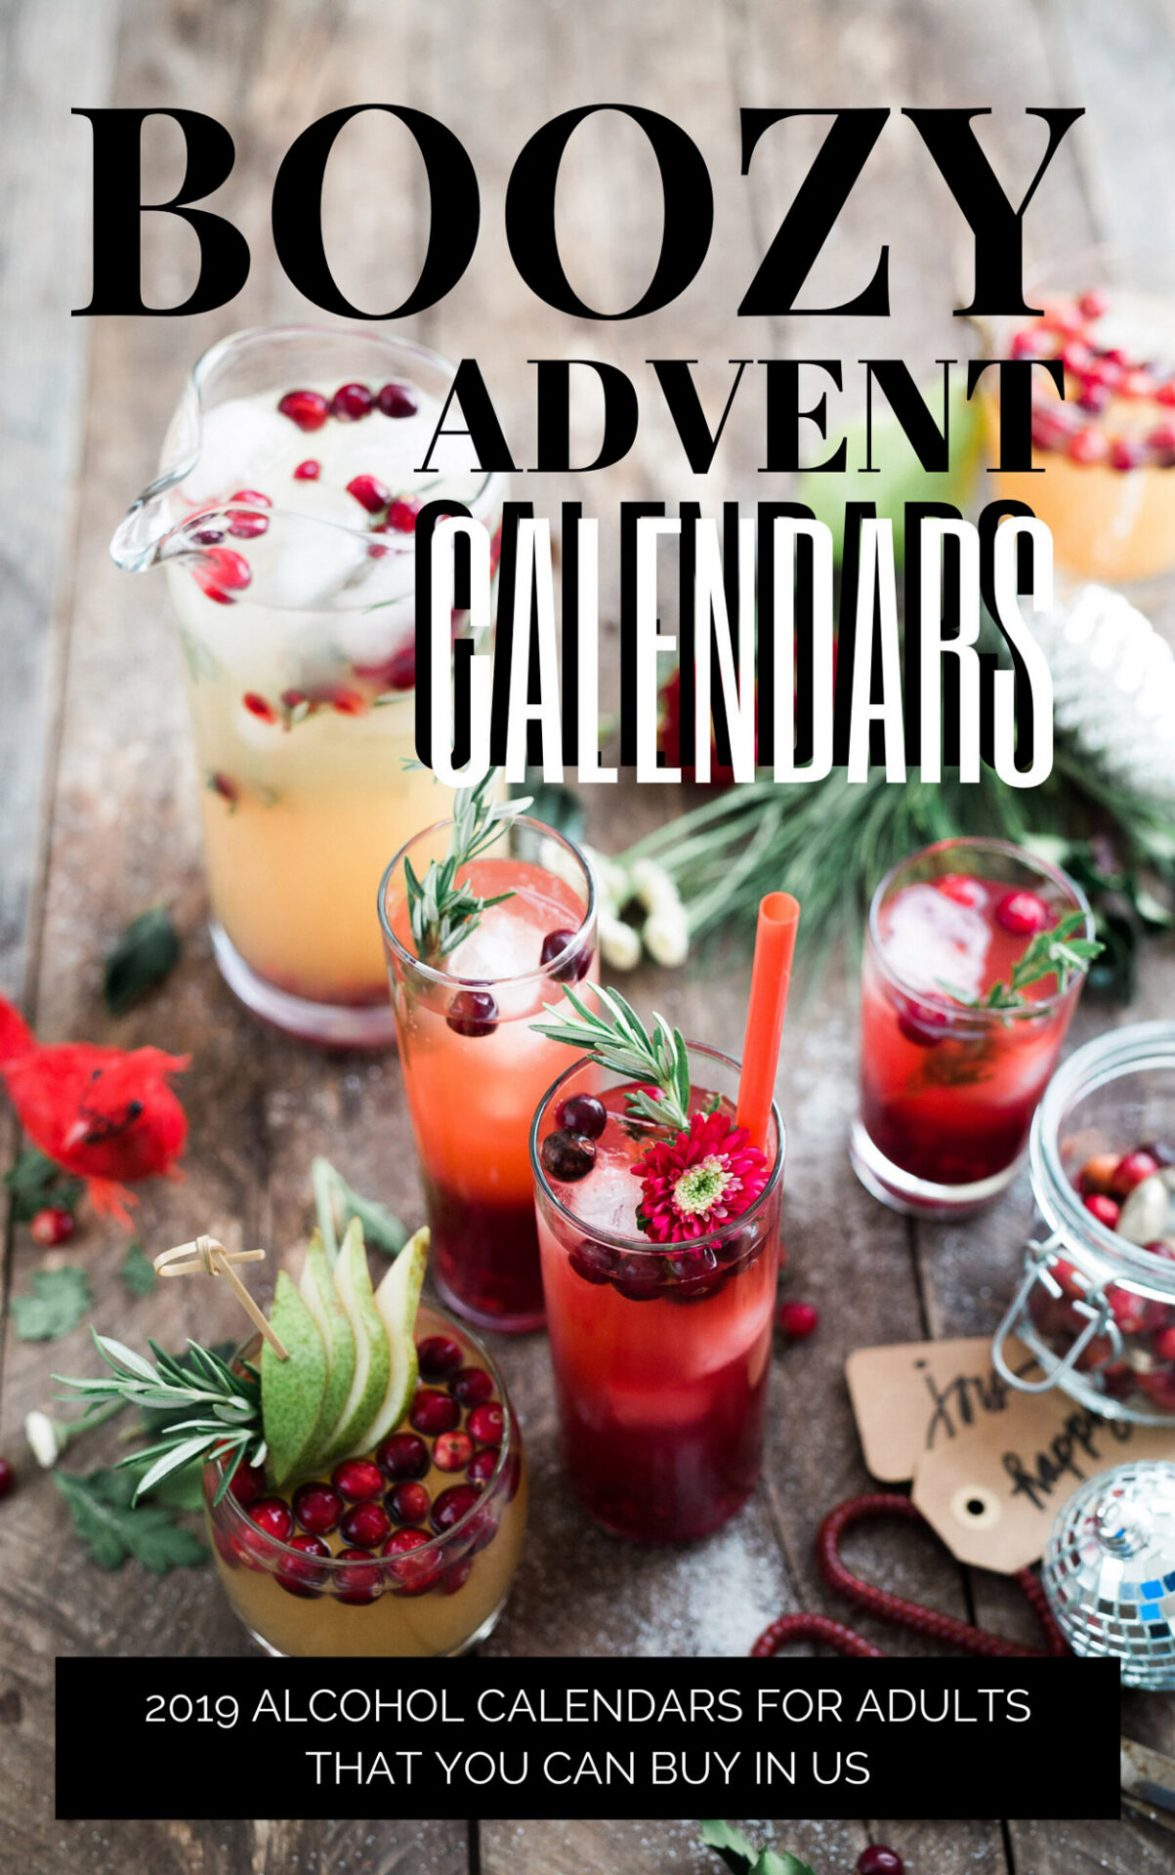 8 Boozy Advent Calendars that you can find in the United States. These alcohol advent calendars are the perfect Holiday gift this season.